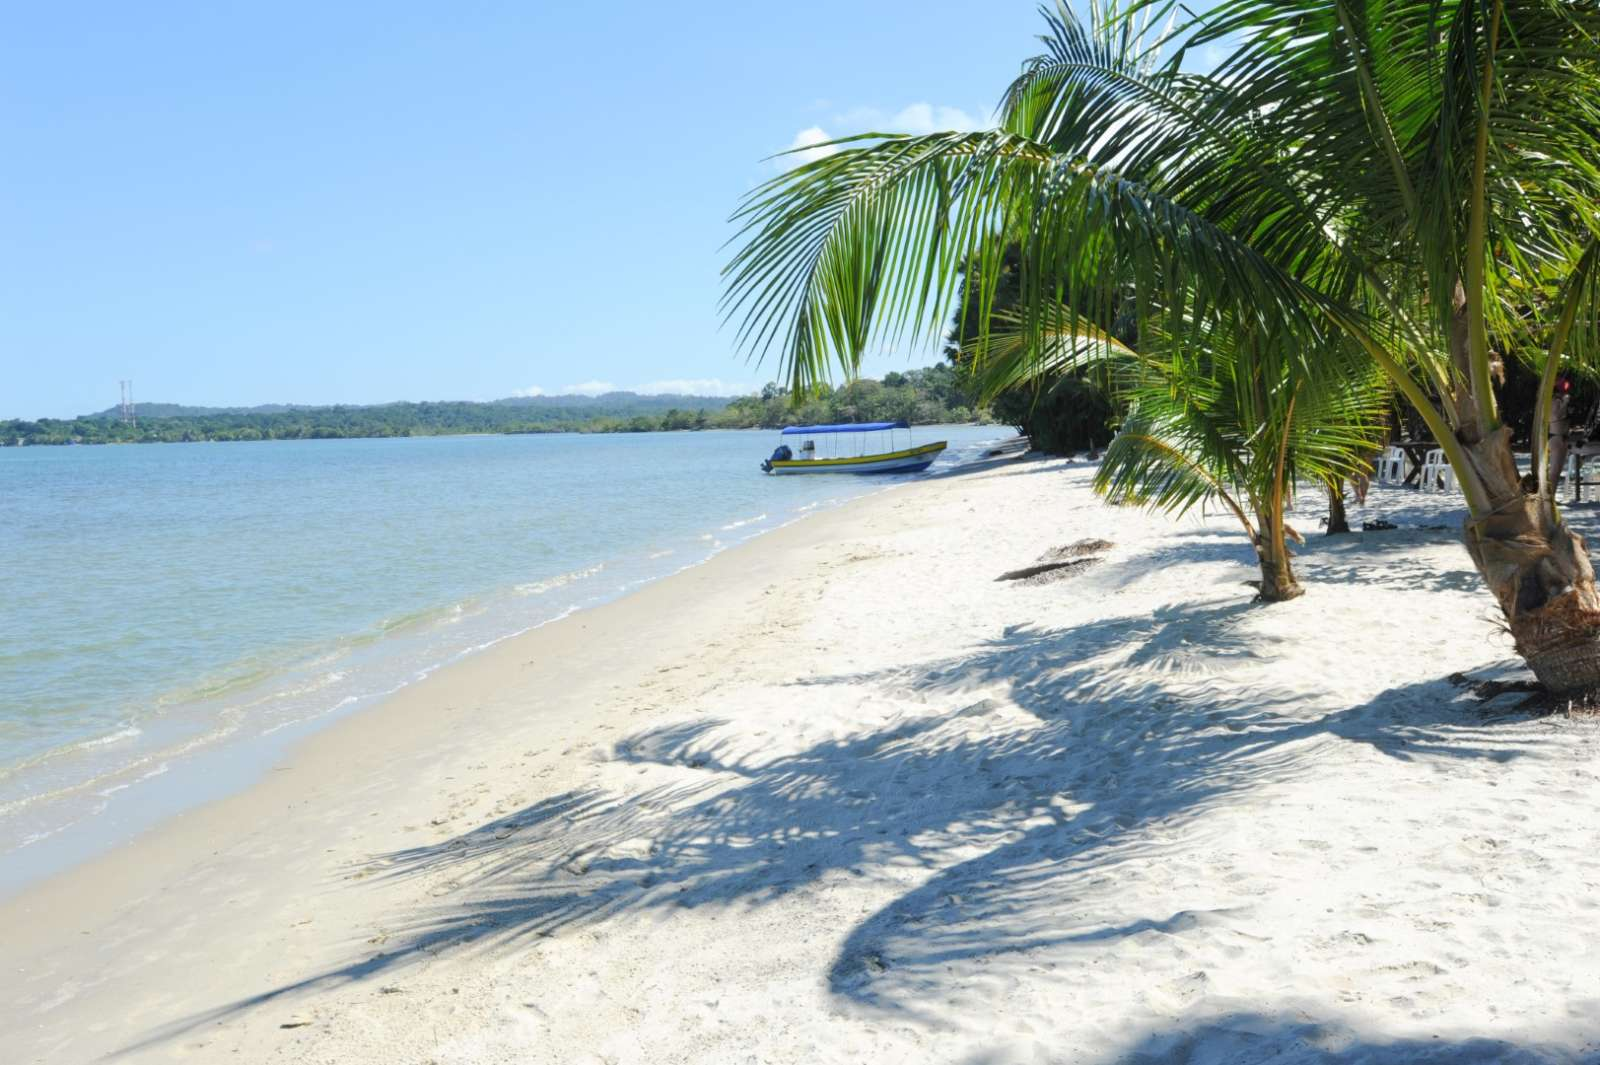 Beach Of Playa Blanca Near Livingston, Guatemala